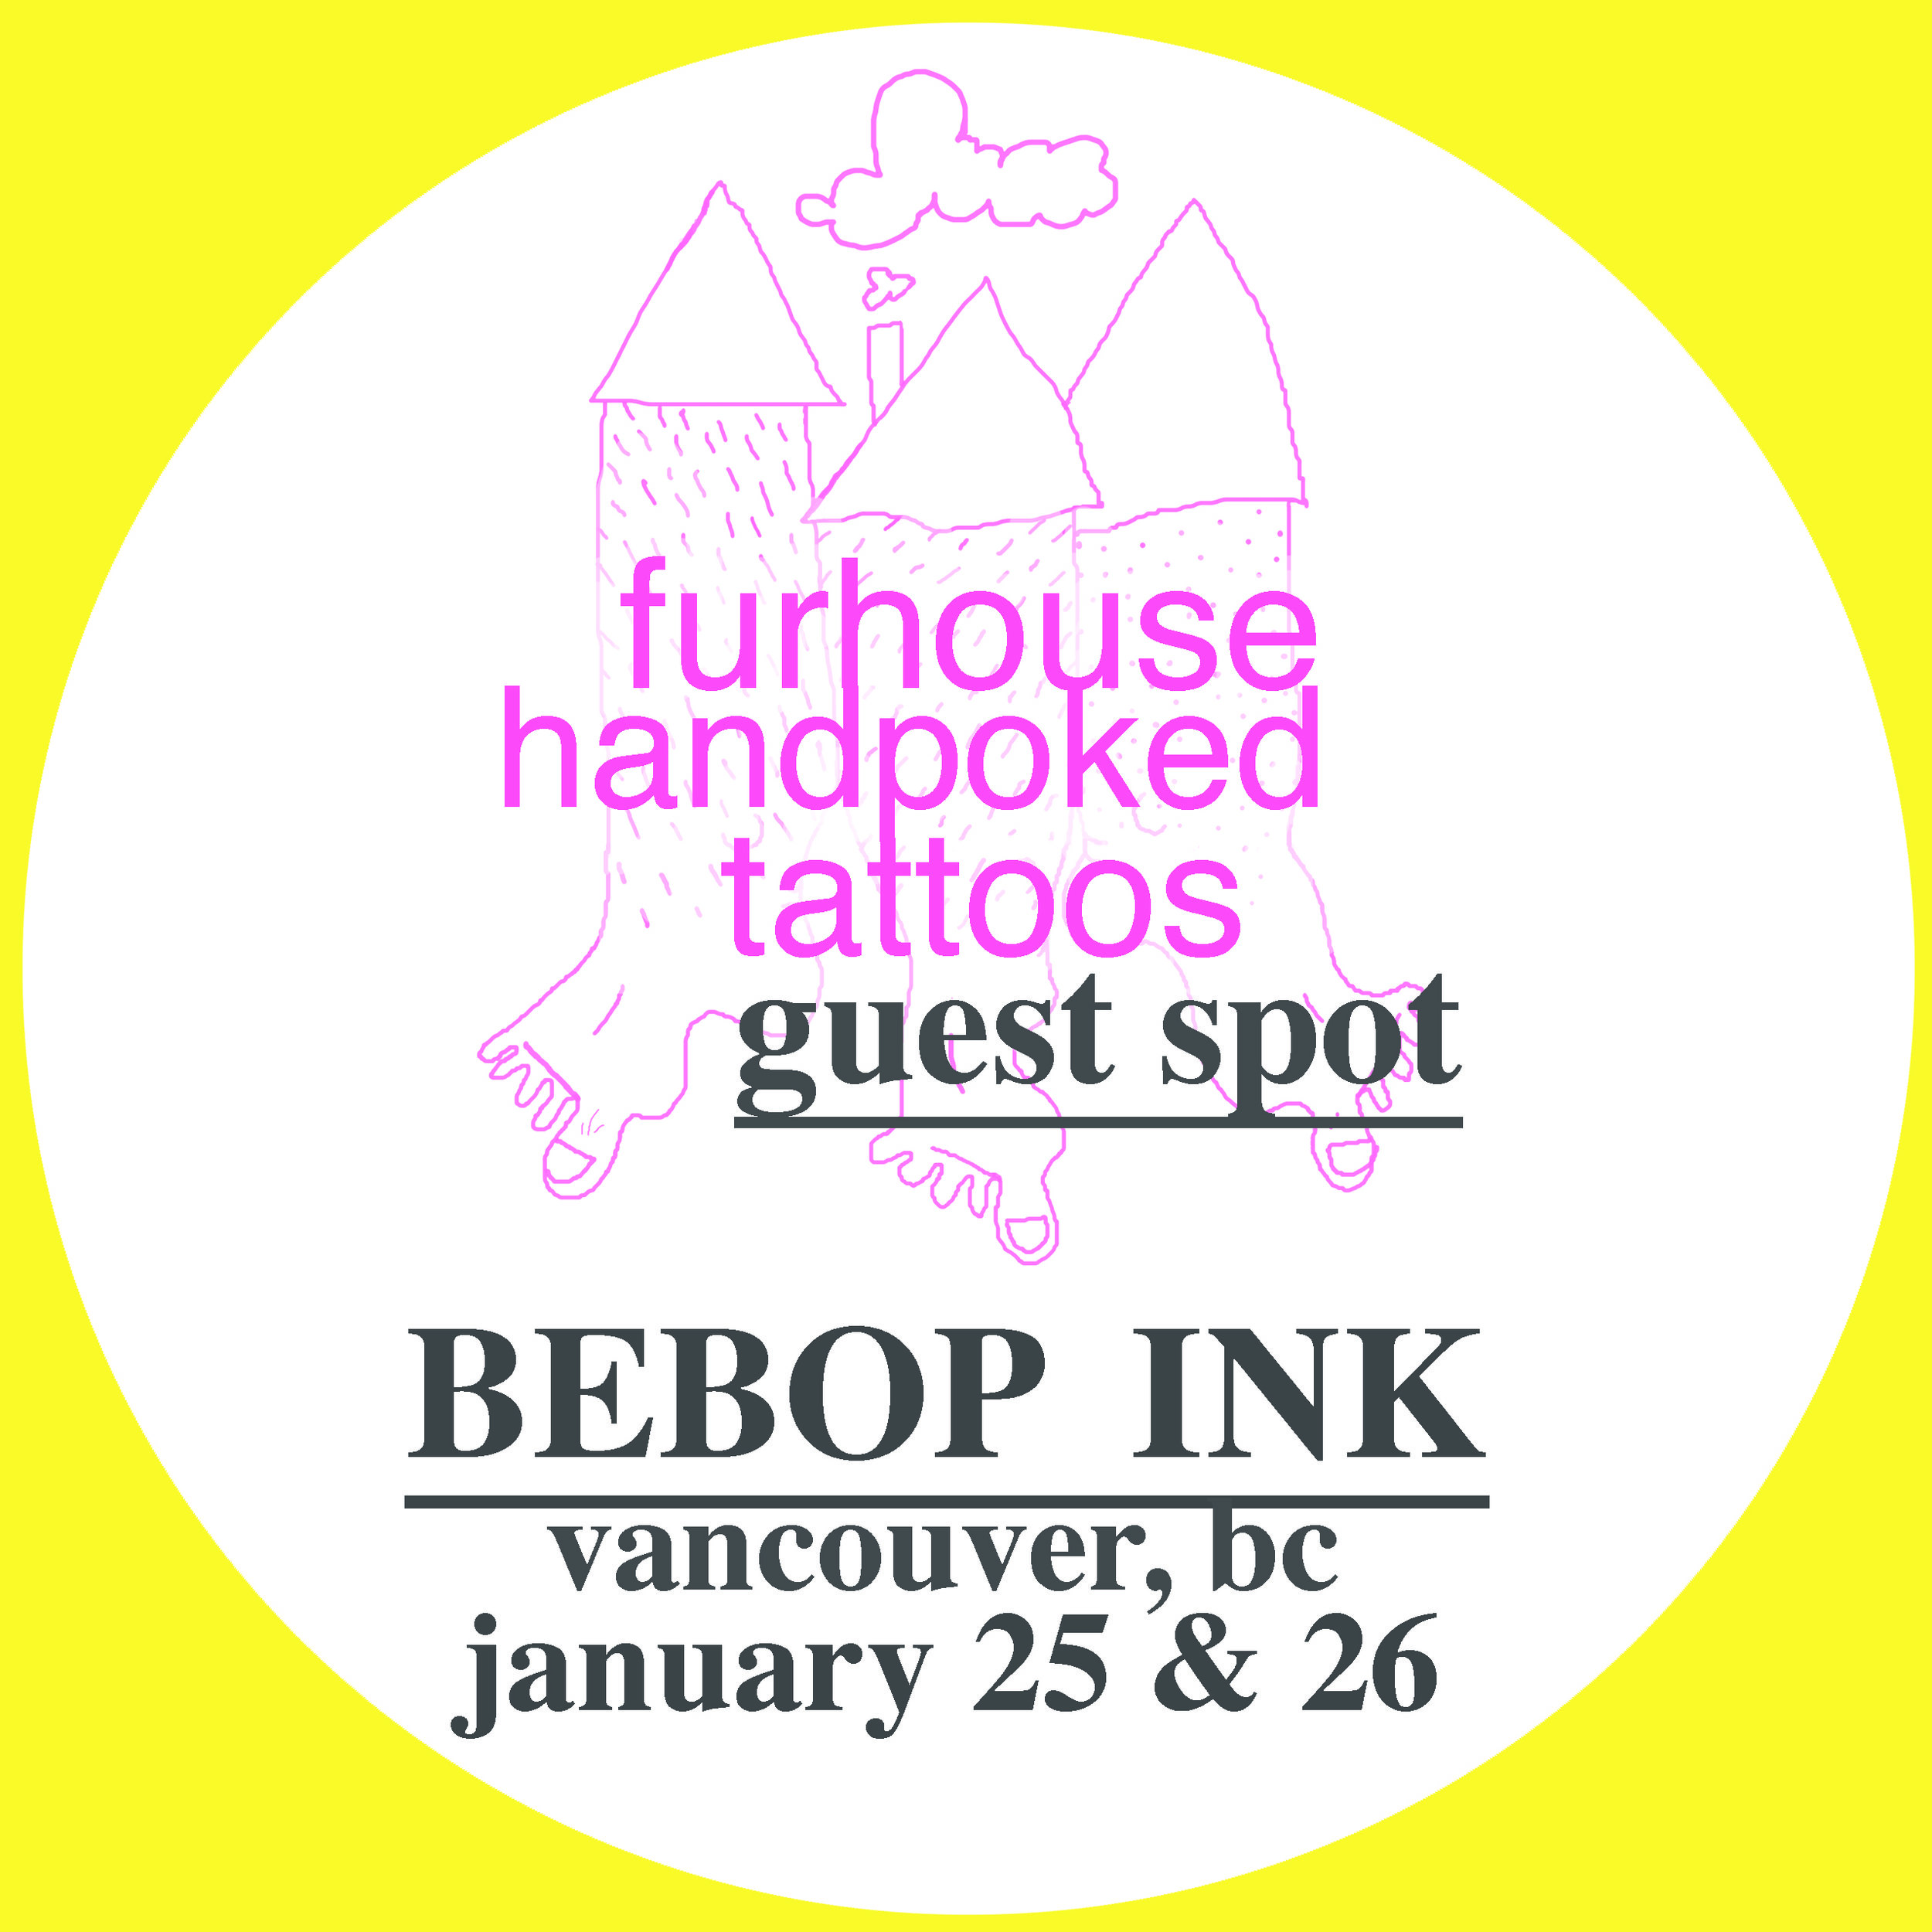 JAN 25/26 2019—————————@furhouse—————————www.instagram.com/furhouse/ -